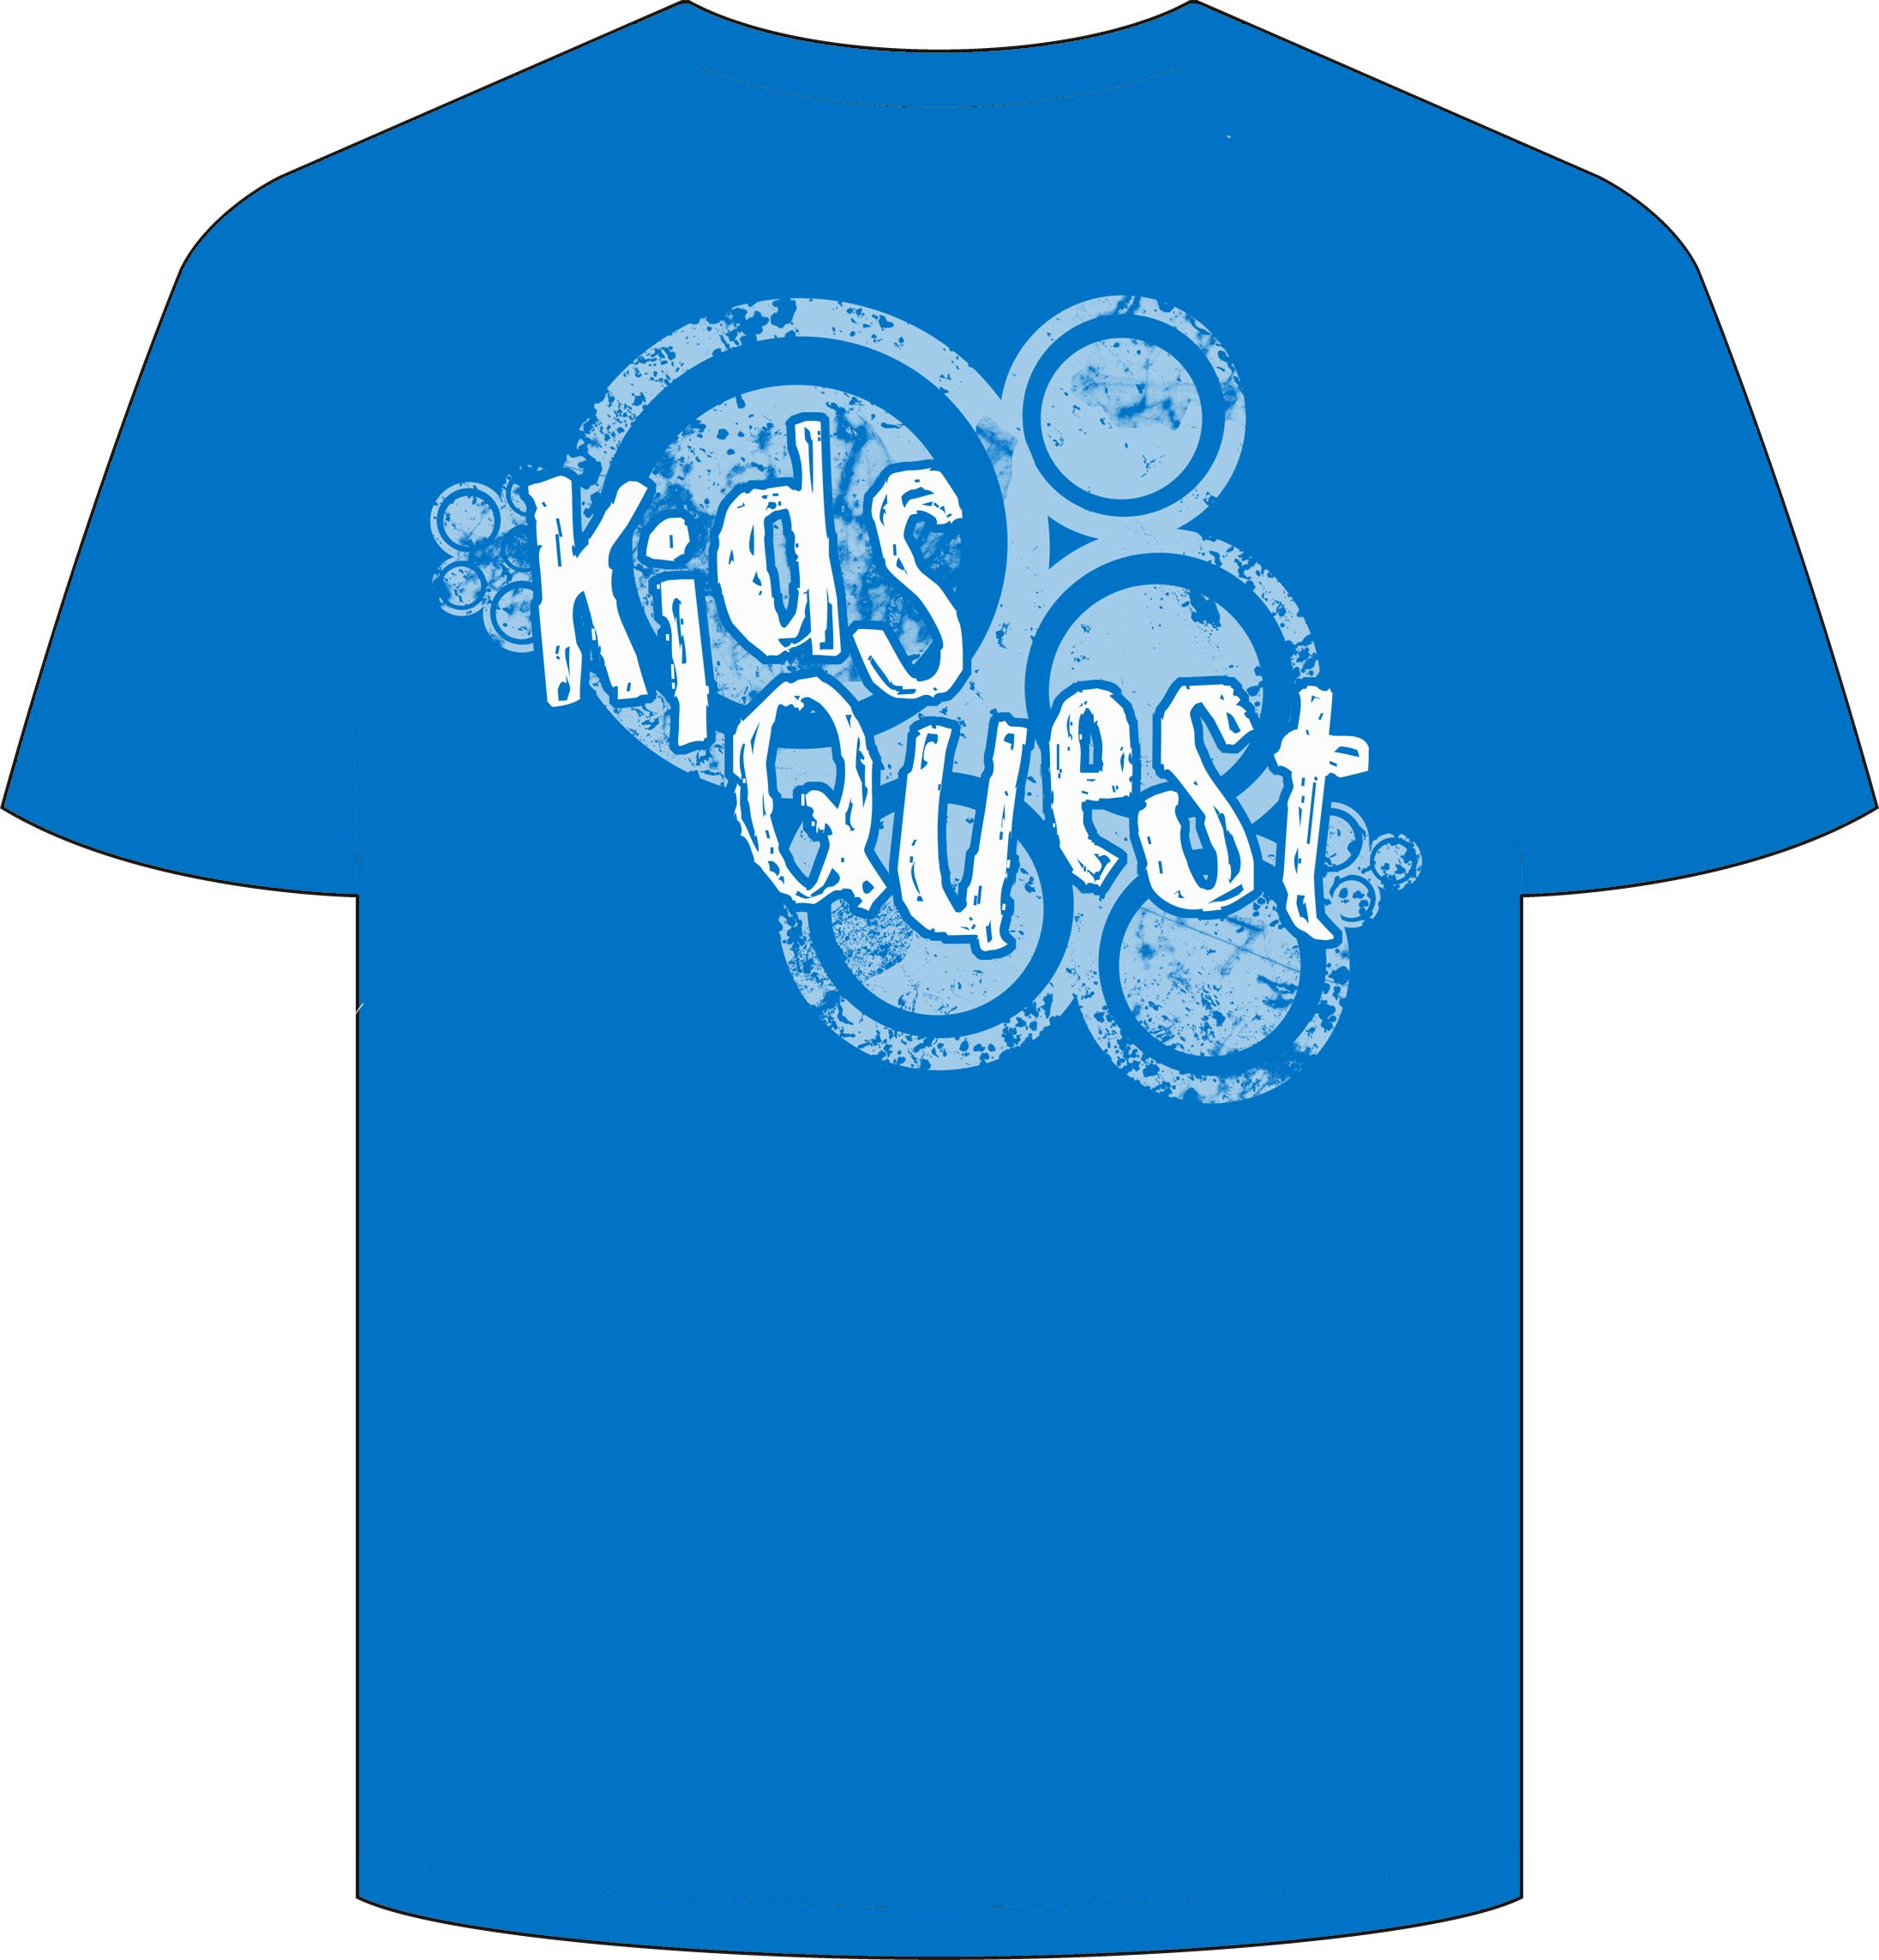 I Like The Two Tone Light Design On A Bright Shirt Submerge Vbs